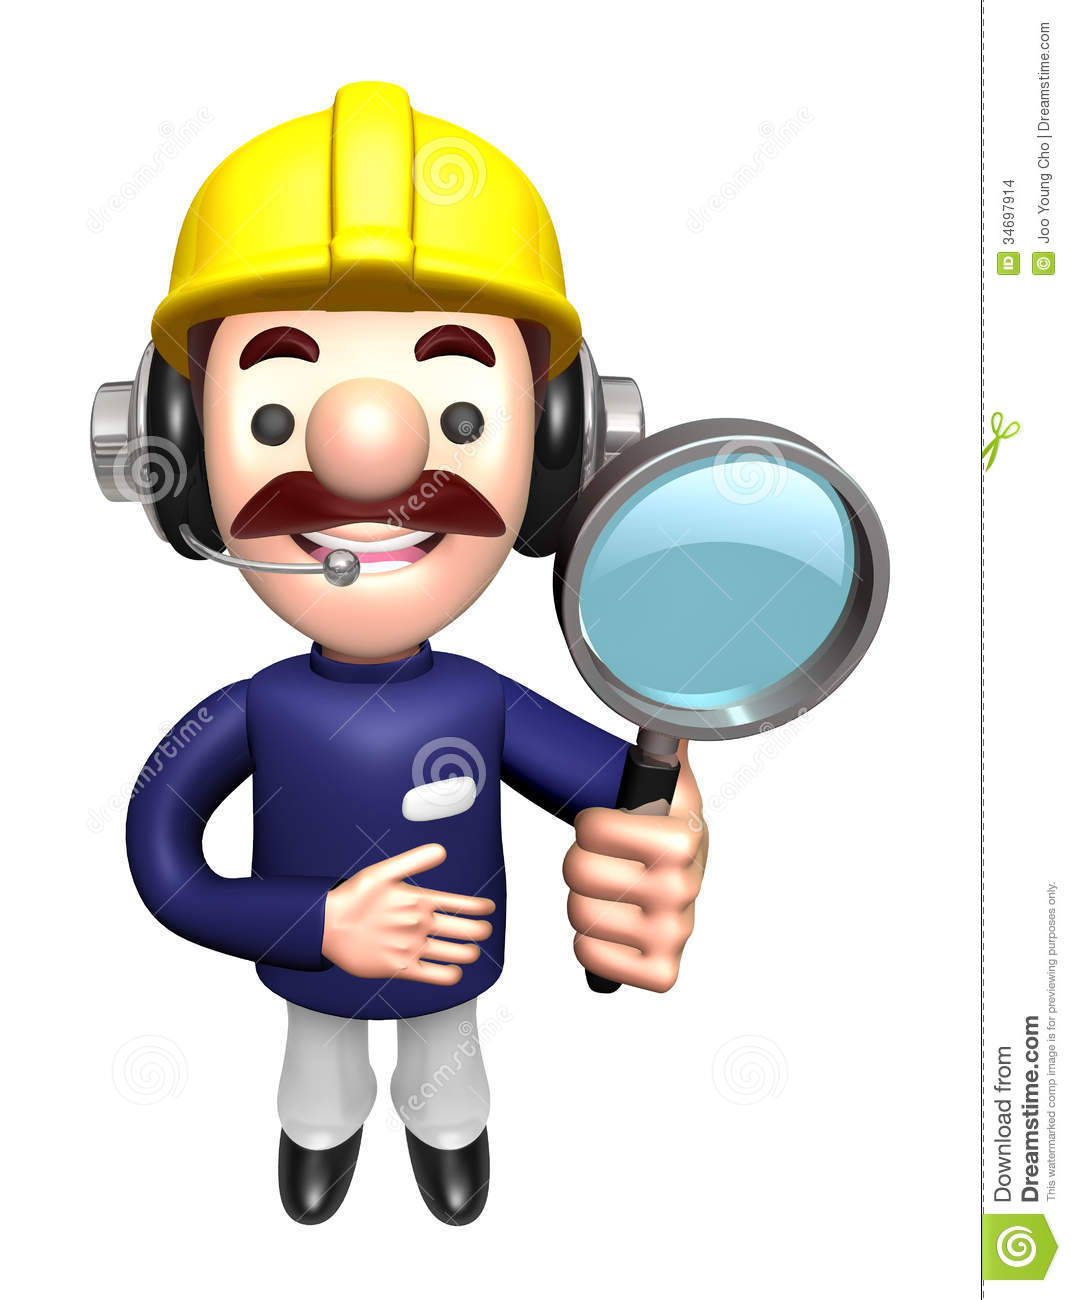 Character Design Job Offer : D construction site man mascot examine a with magnifying